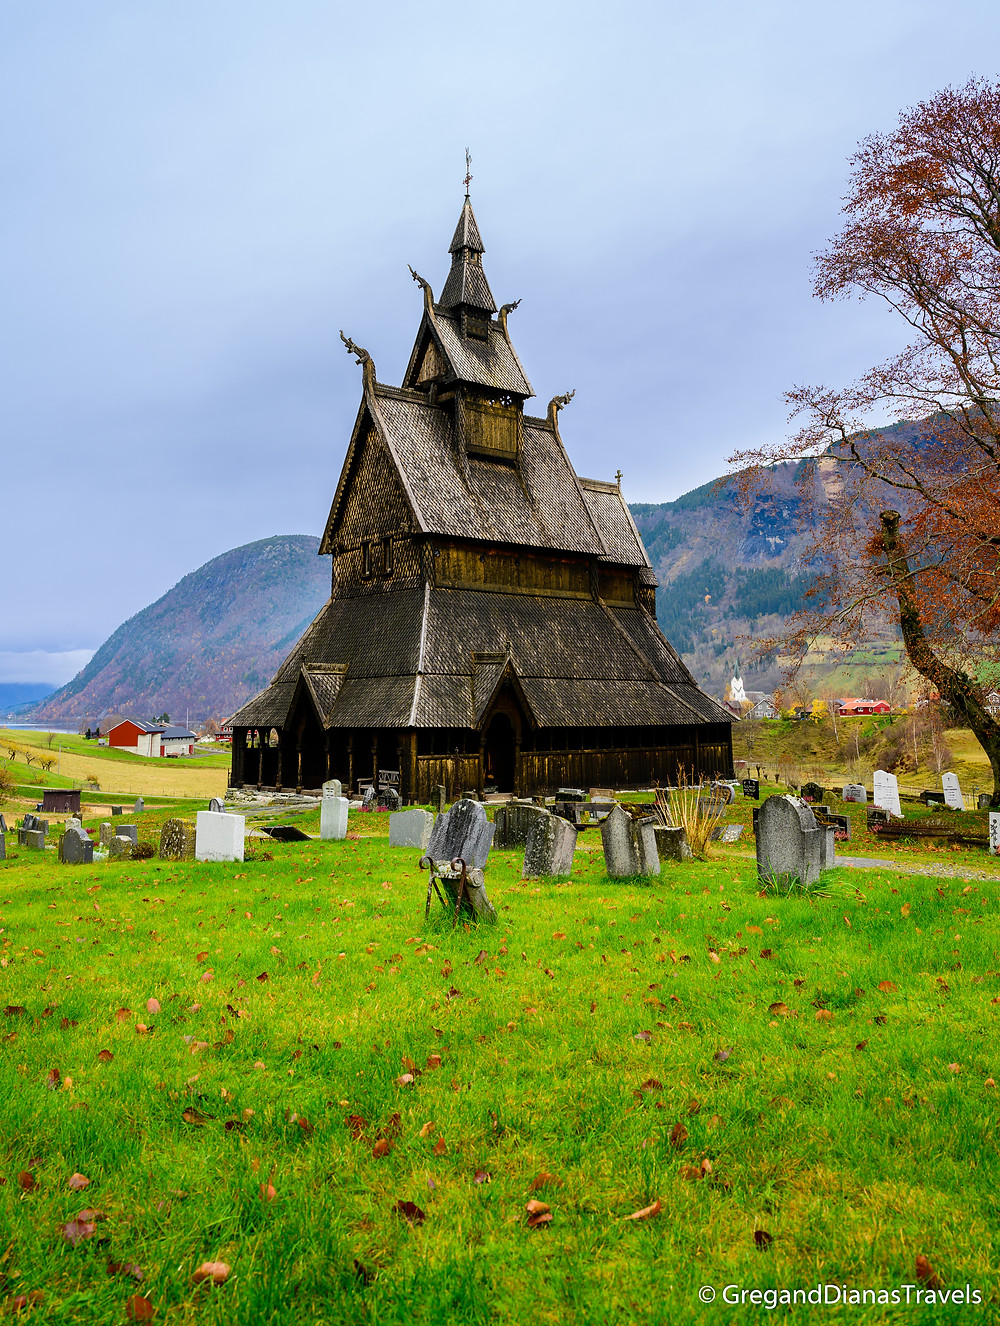 Hopperstad Stave Church, Stave Churches Norway, Travel to Norway, Norwegian Stave Churches